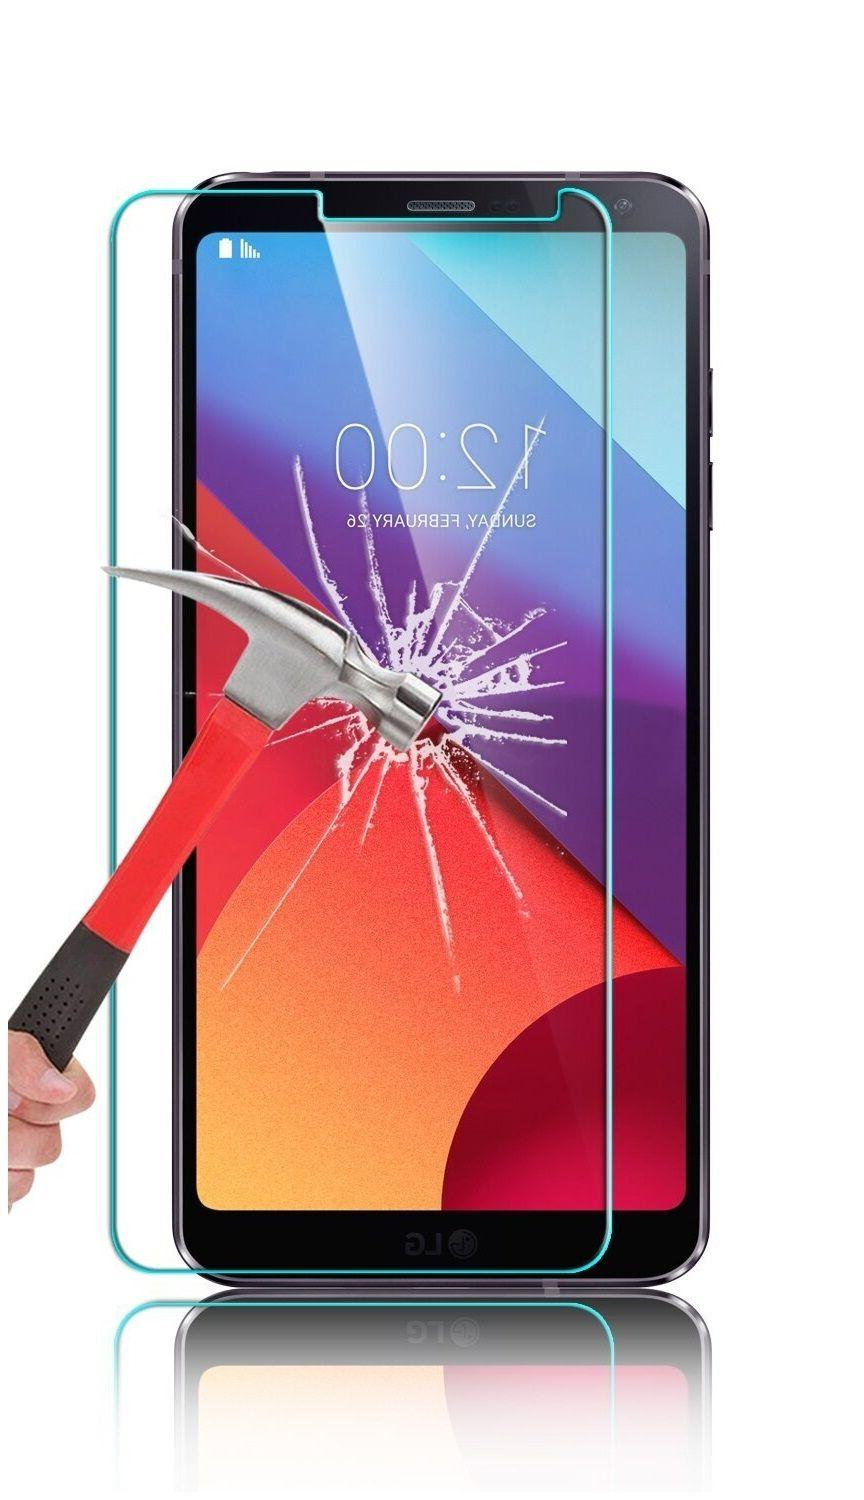 NEW 9H HARD BALLISTIC TEMPERED GLASS SCREEN PROTECTOR FOR G6